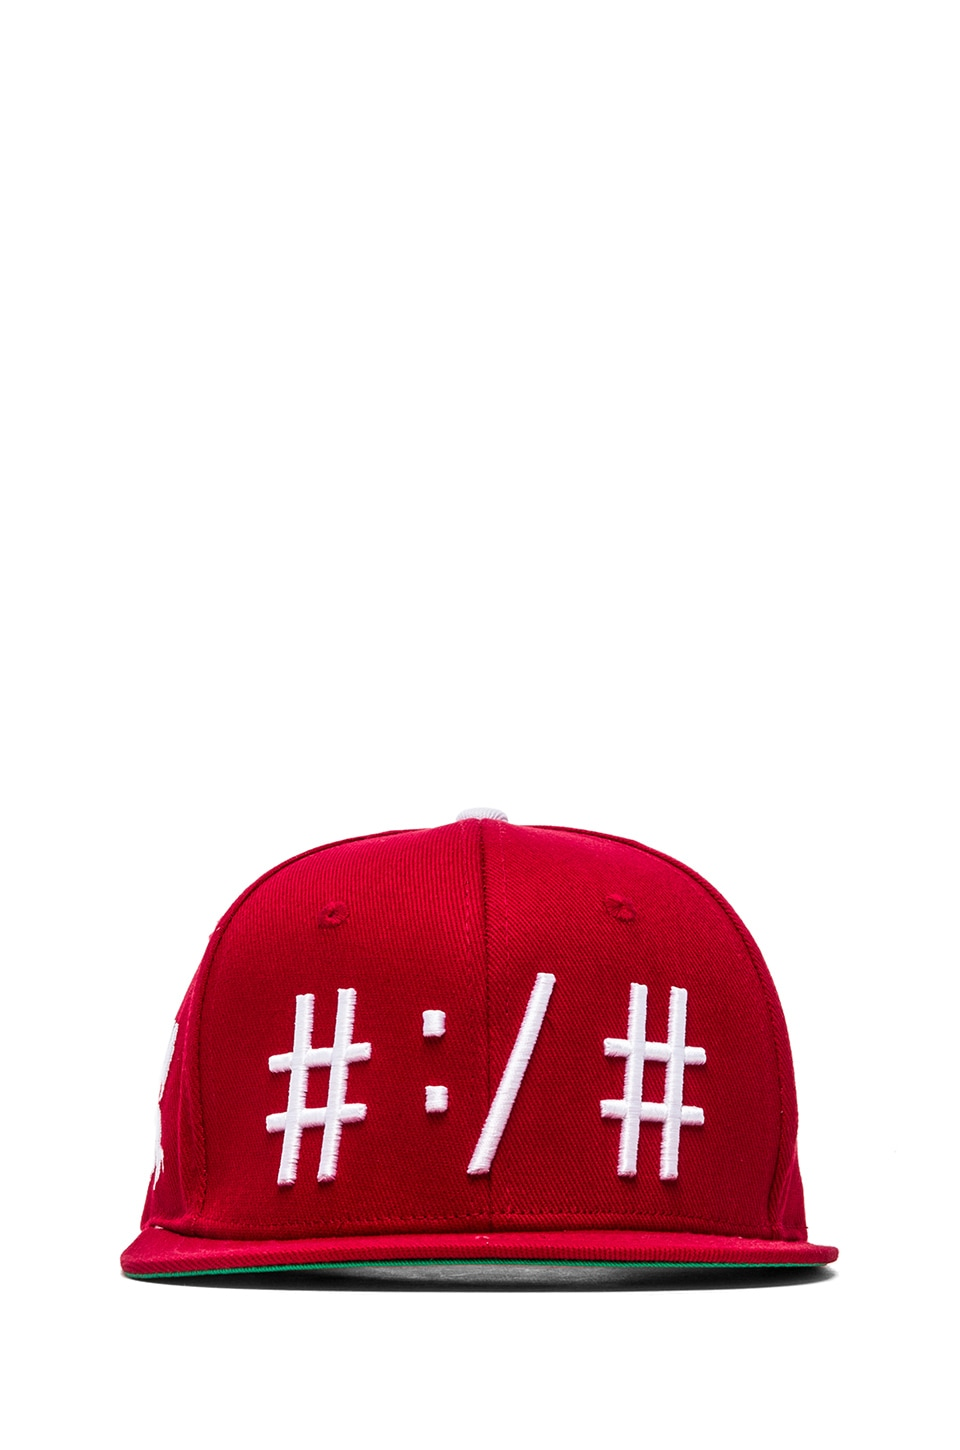 Been Trill Been Troll Eh Hat in Red and White